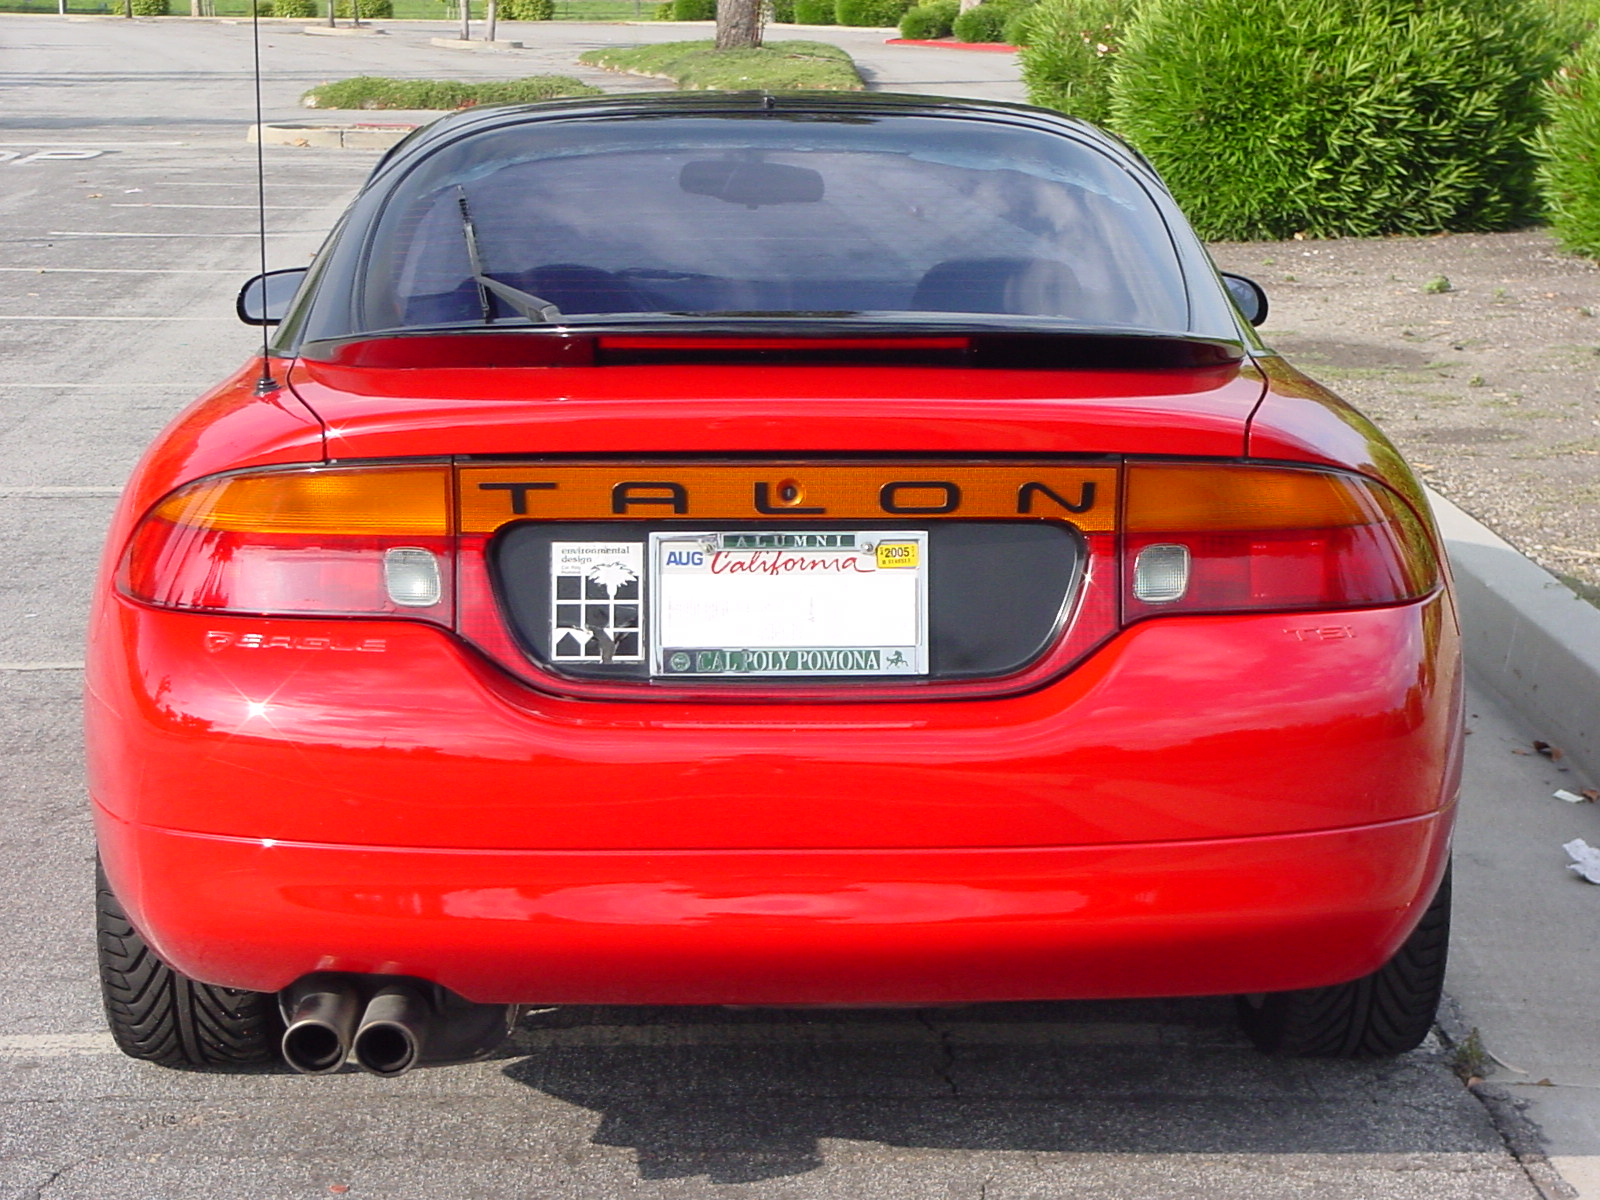 Eagle Talon #5